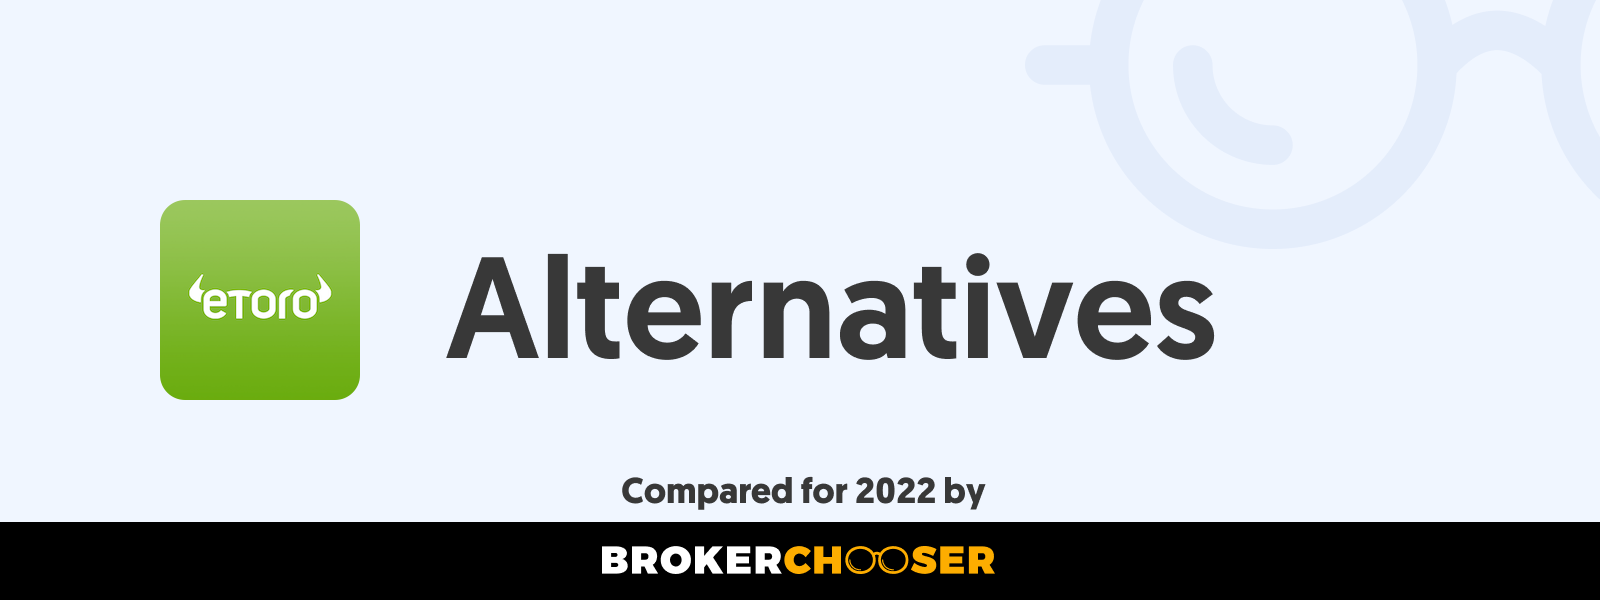 eToro Alternatives